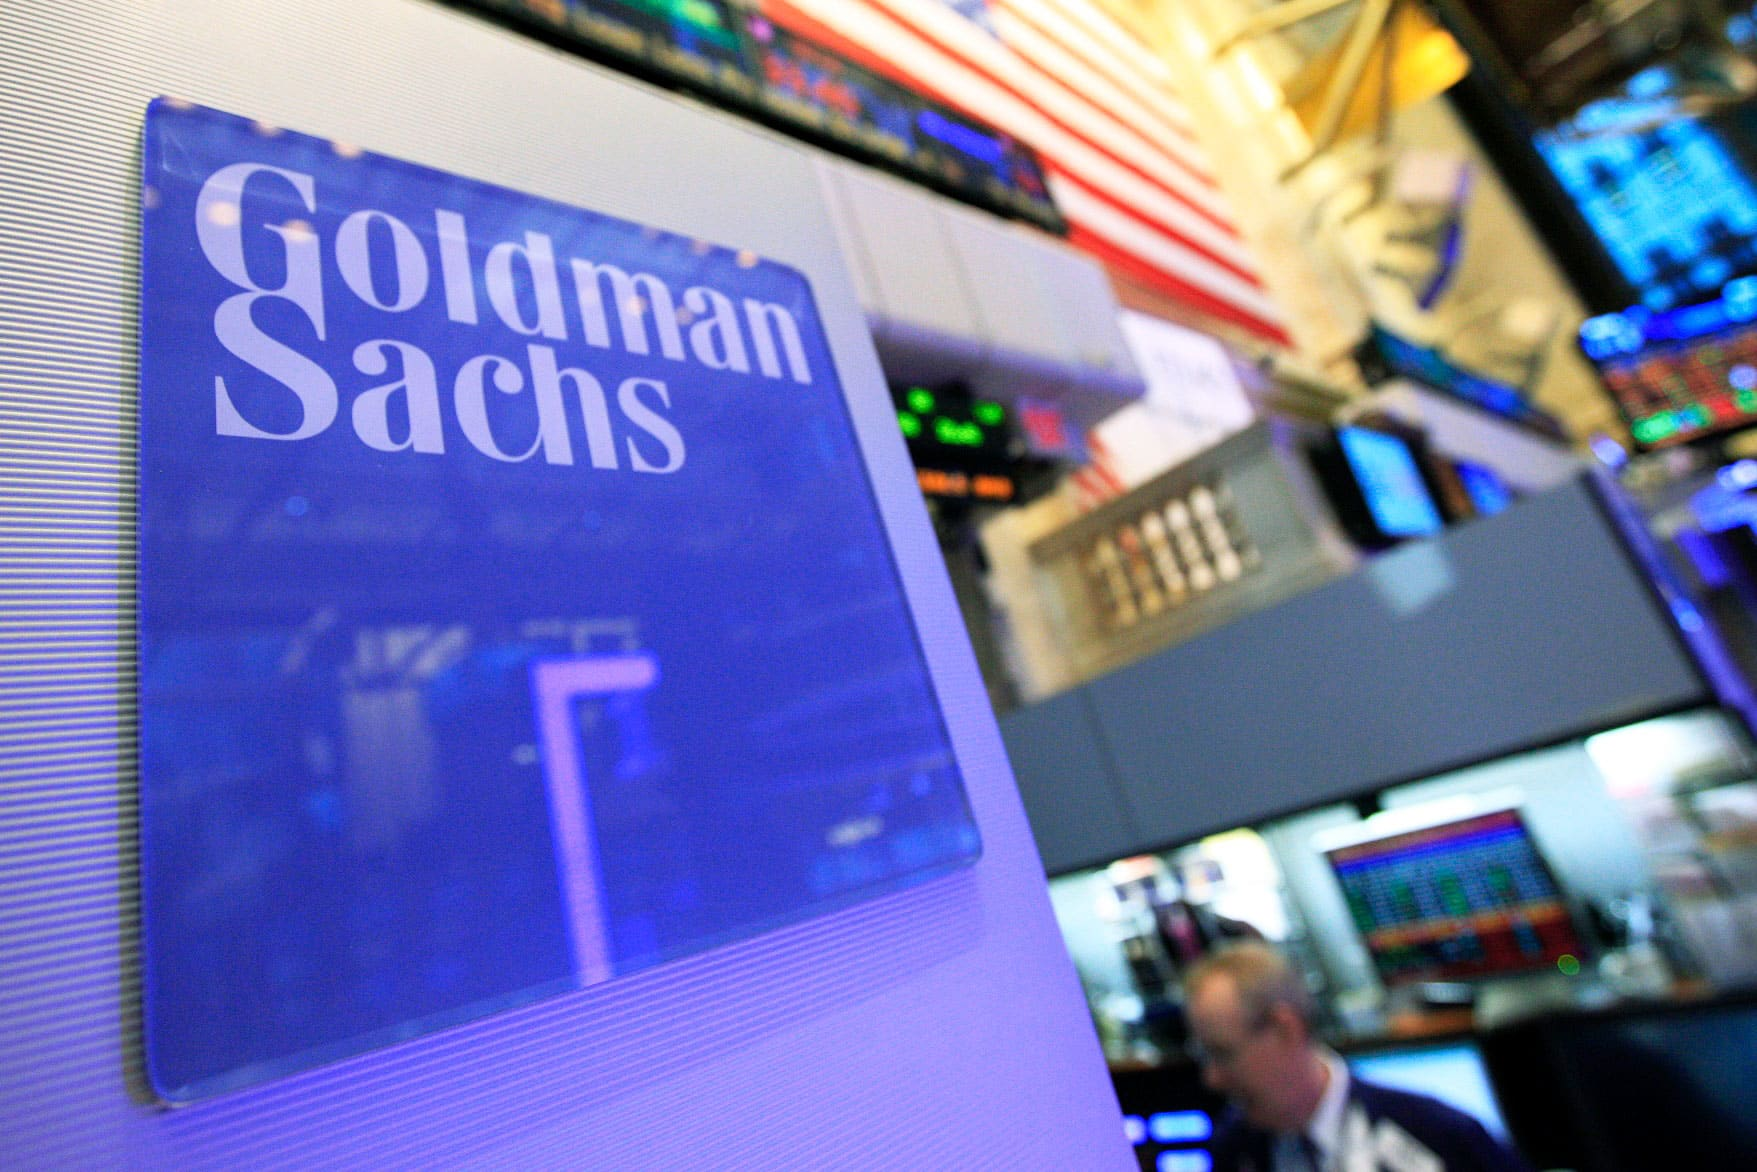 Stocks making the biggest moves midday: Boeing, Goldman Sachs, Amazon and more